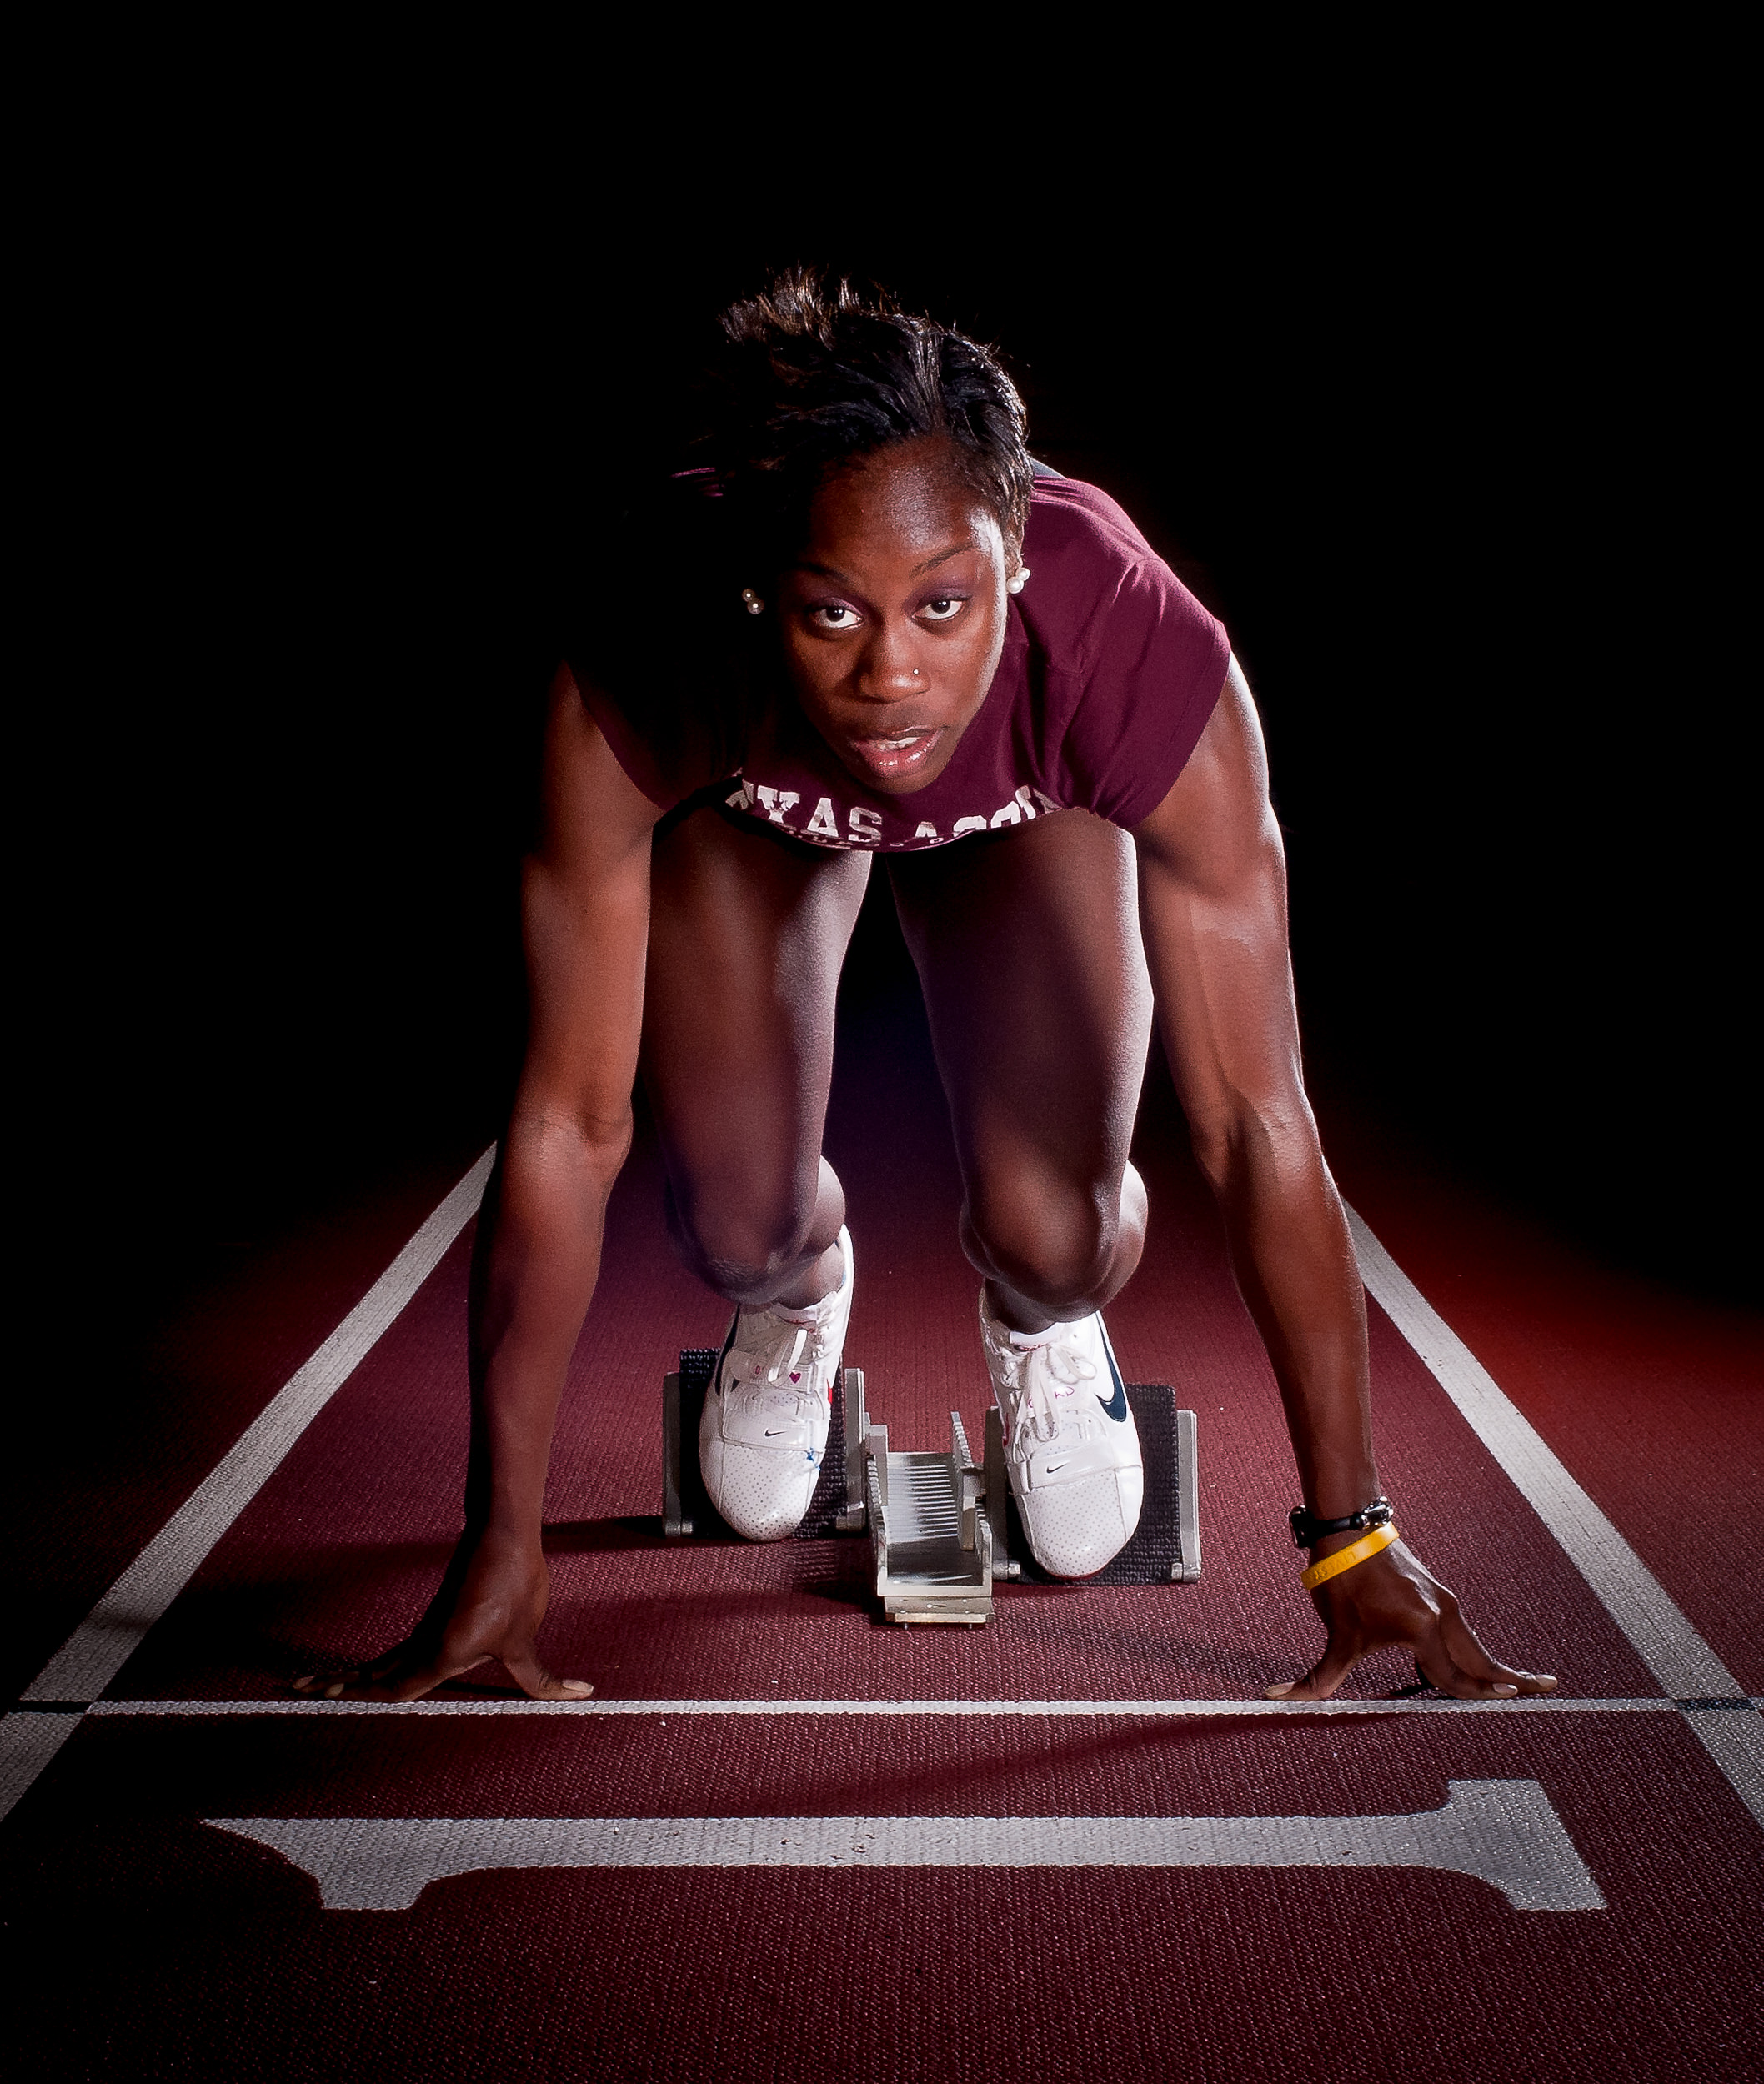 """Senior Jessica Beard, medalist sprinter in the 4x400m at the 2009 Olympics, takes her mark on the starting block, Feb. 1, 2011. As a graduating senior on the Texas A&M University Track & Field team, Beard was named as the Distinguished Letterman of the Year for exhibiting """"honor in all areas""""."""